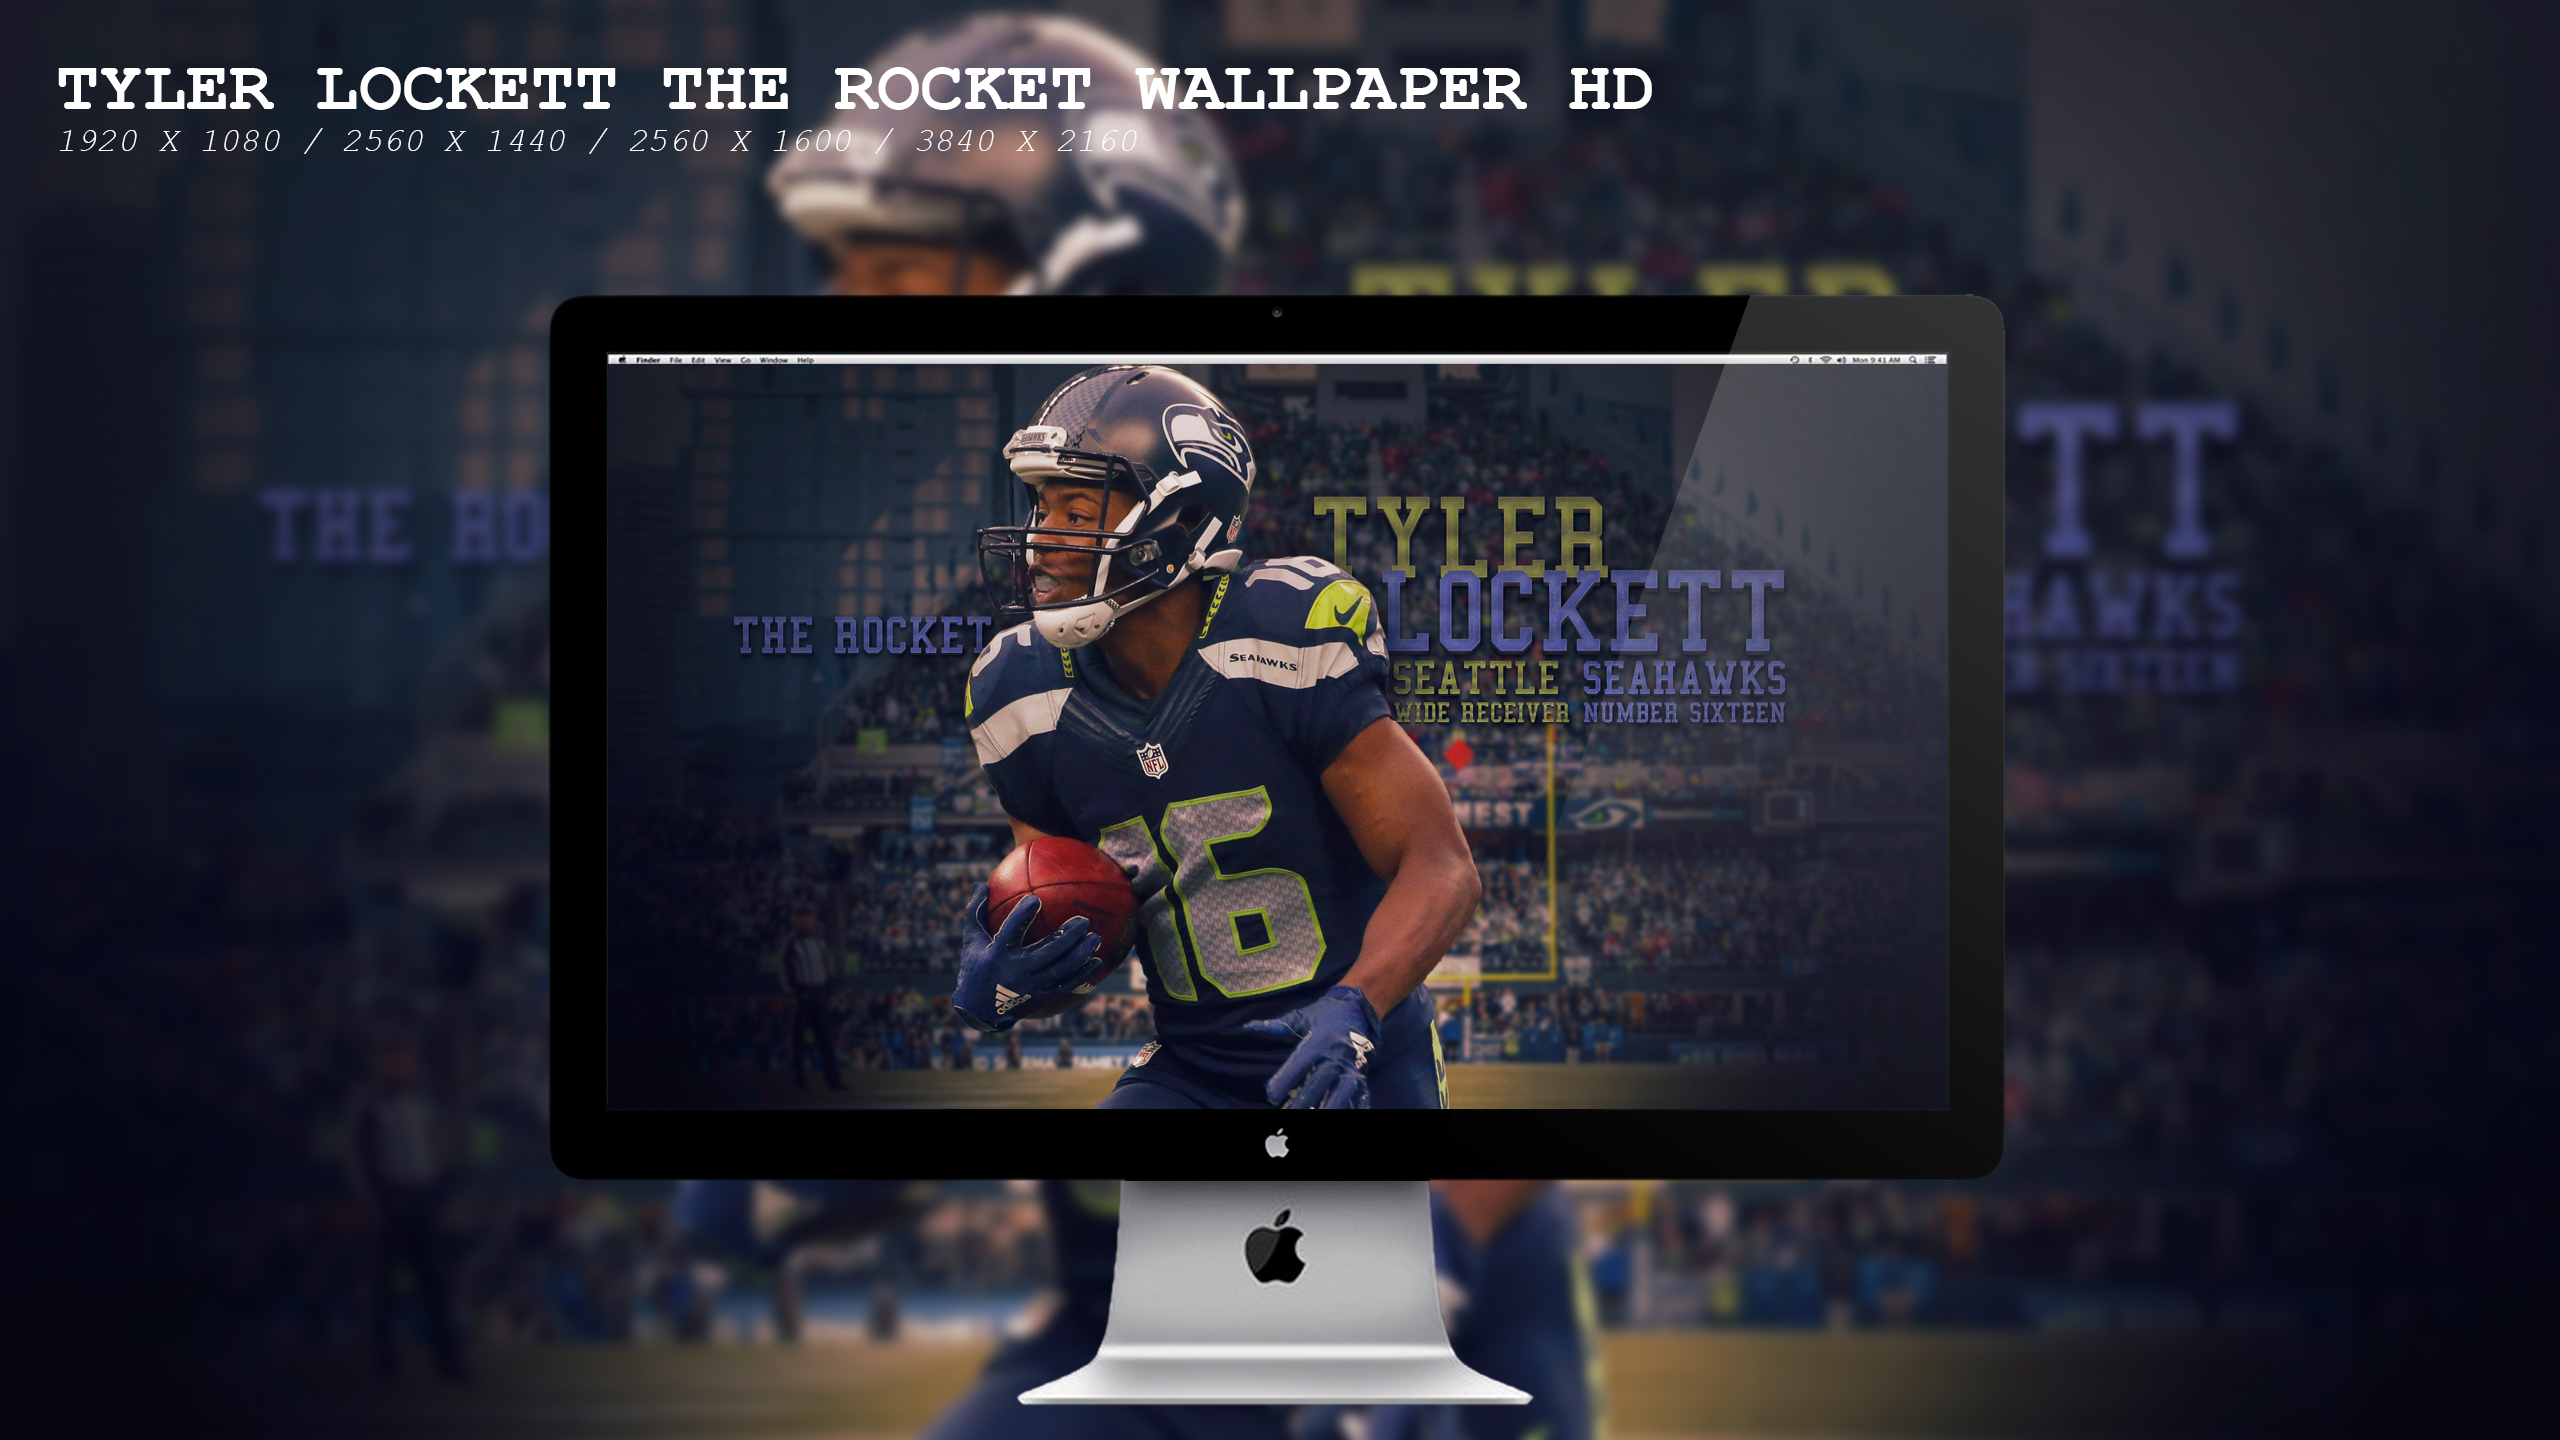 Tyler Lockett The Rocket Wallpaper Hd By Beaware8 On Deviantart